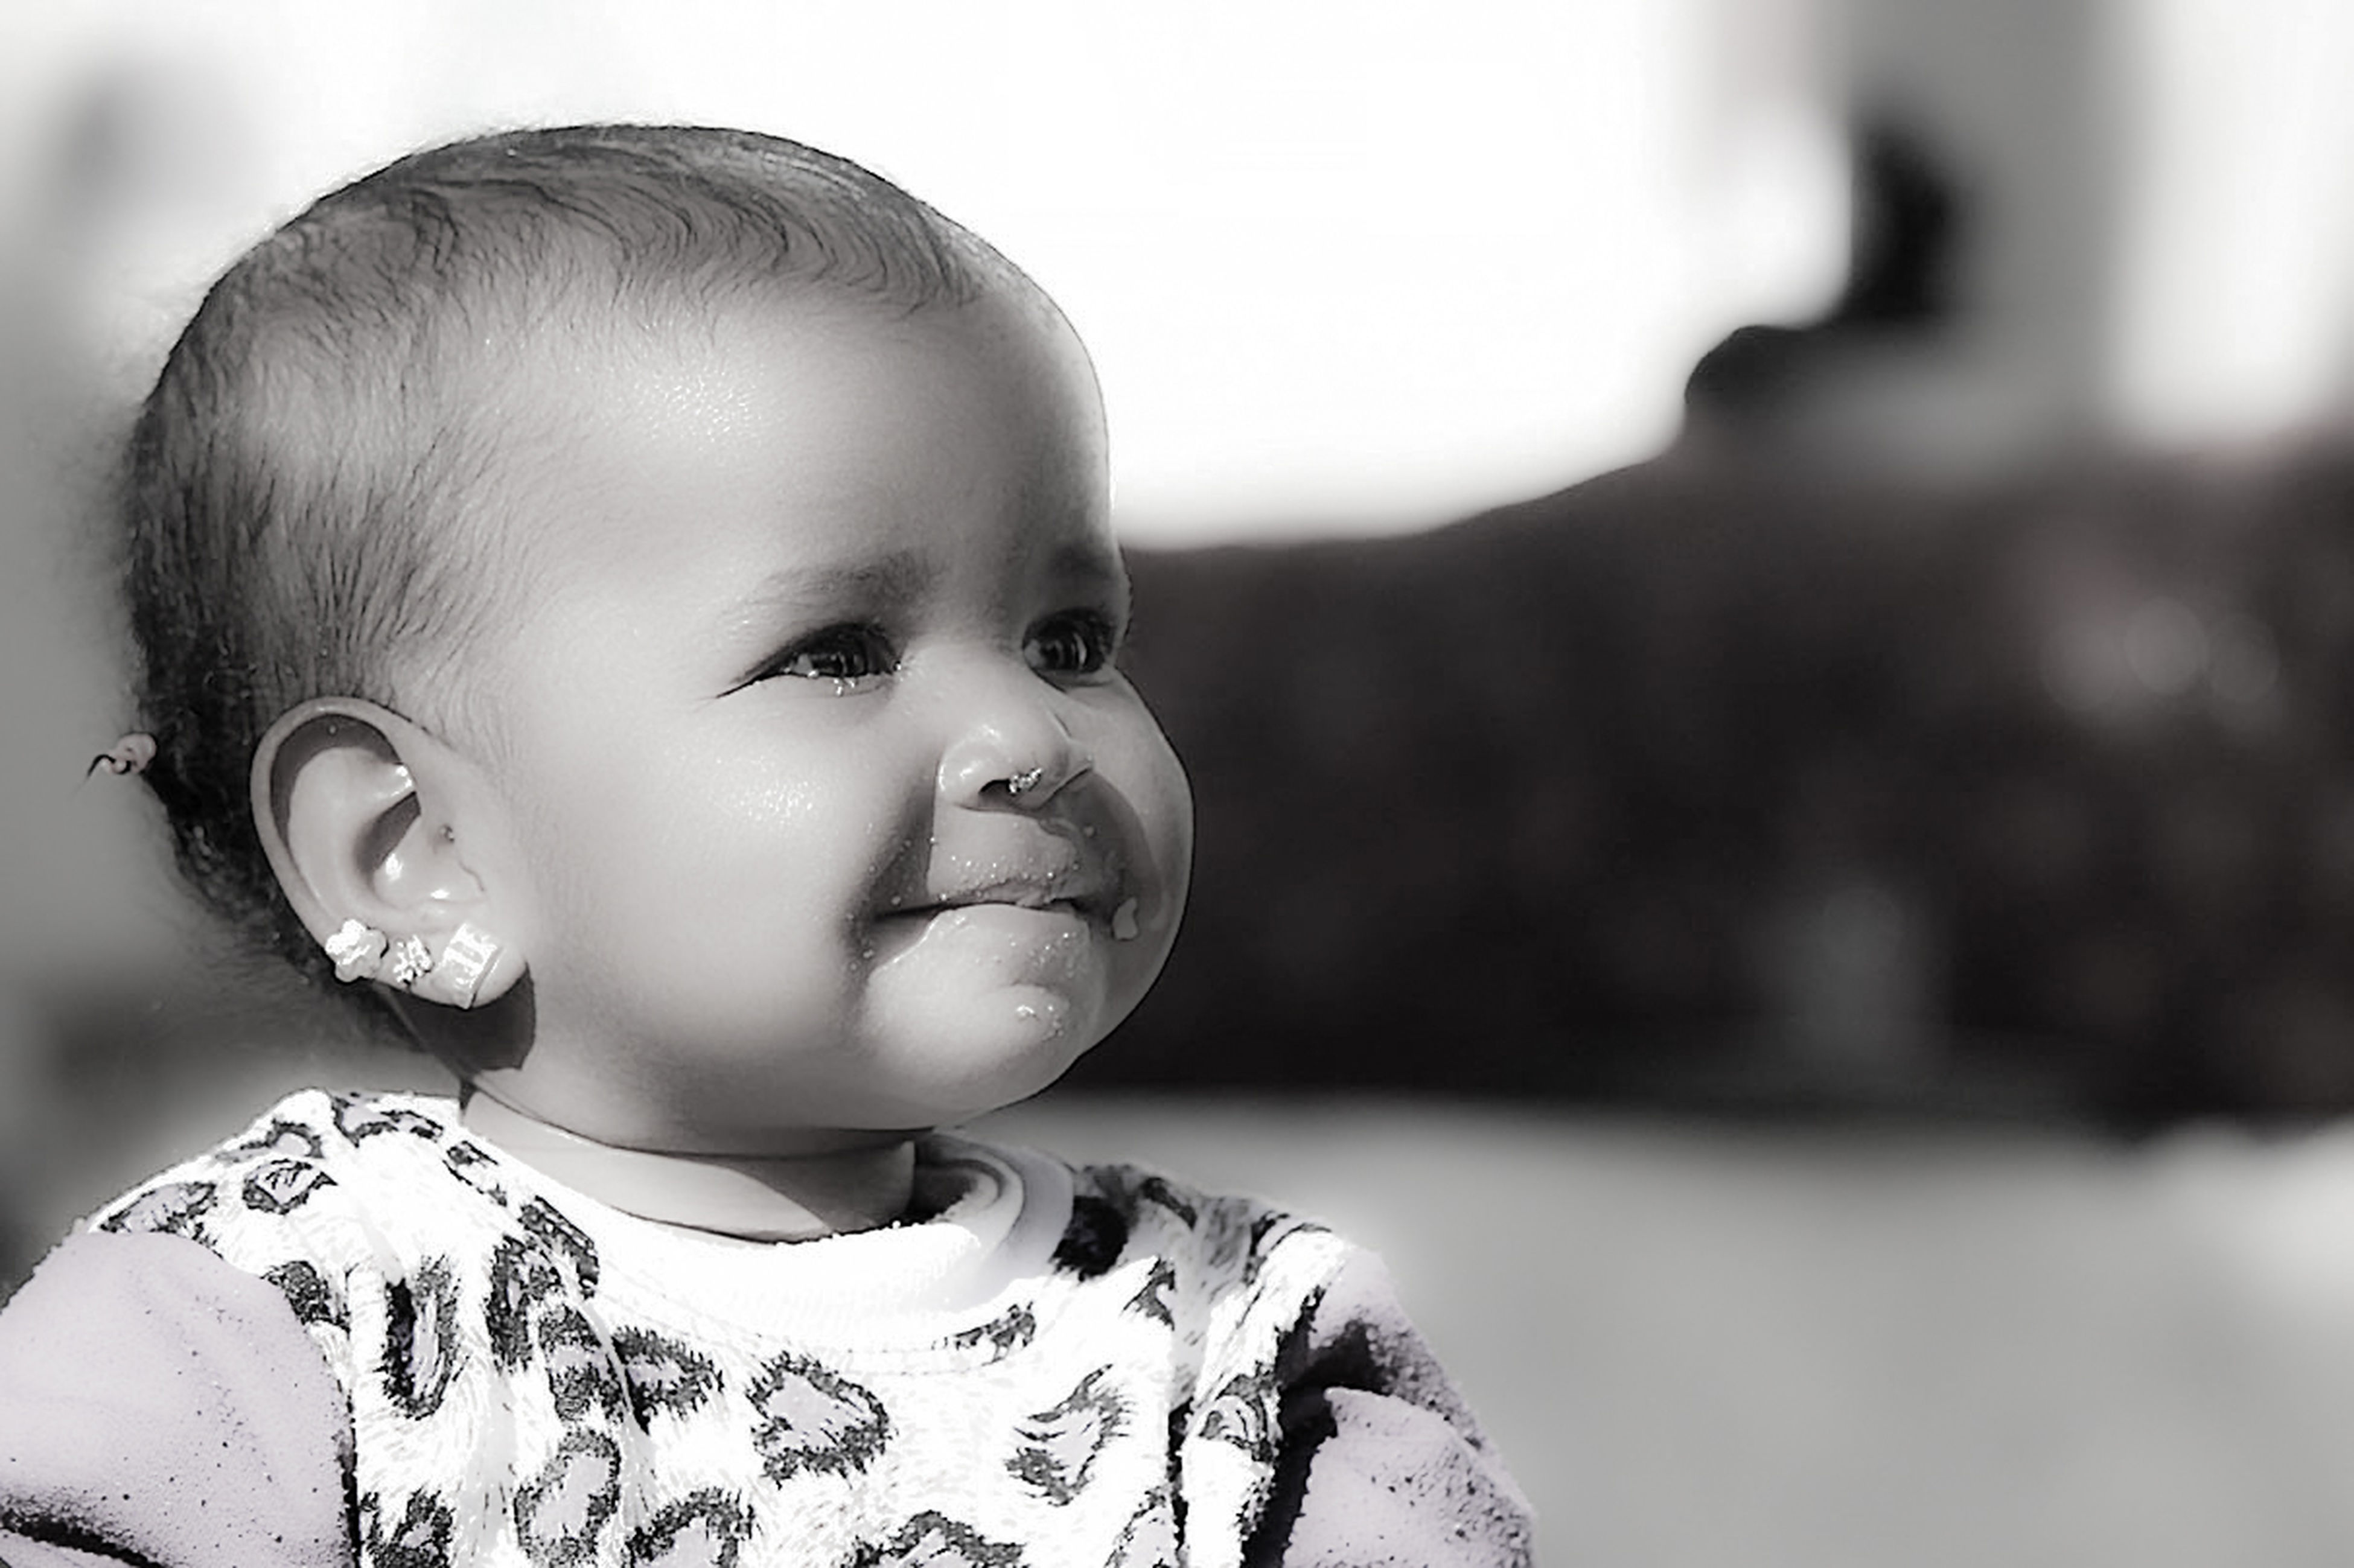 baby, babies only, headshot, happiness, human face, domestic life, smiling, close-up, people, indoors, day